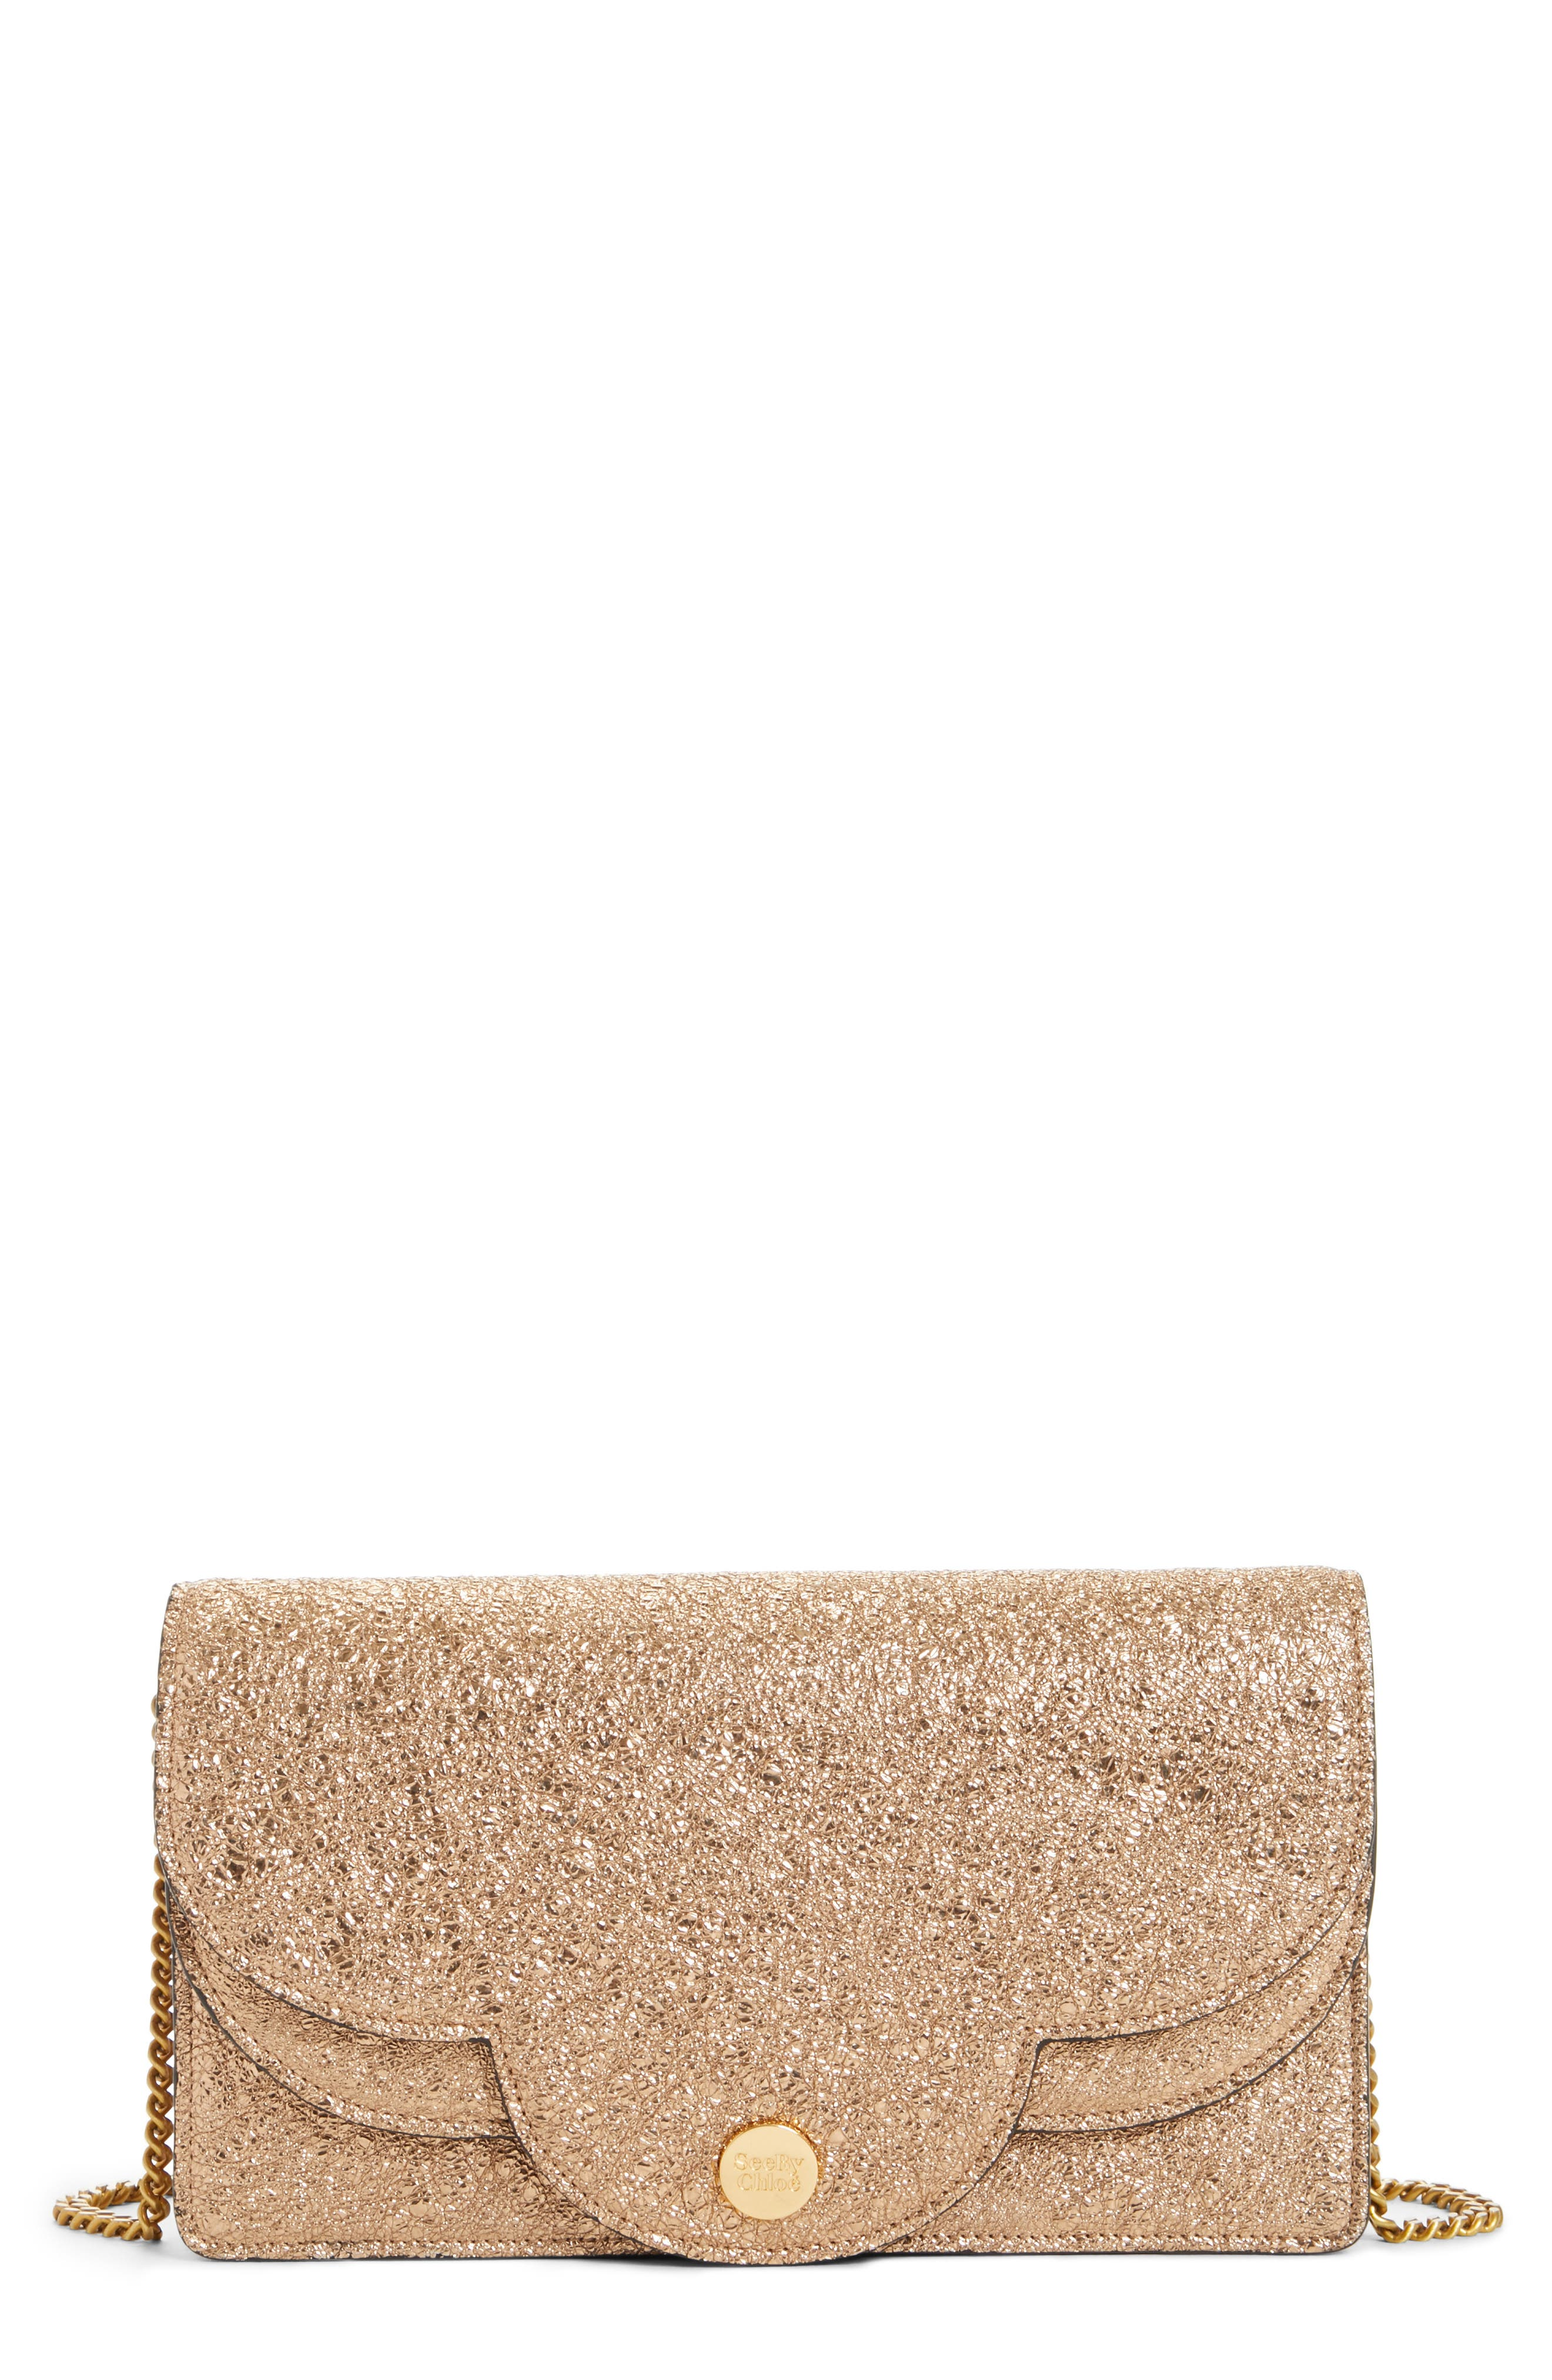 See by Chloé Polina Metallic Leather Crossbody Clutch